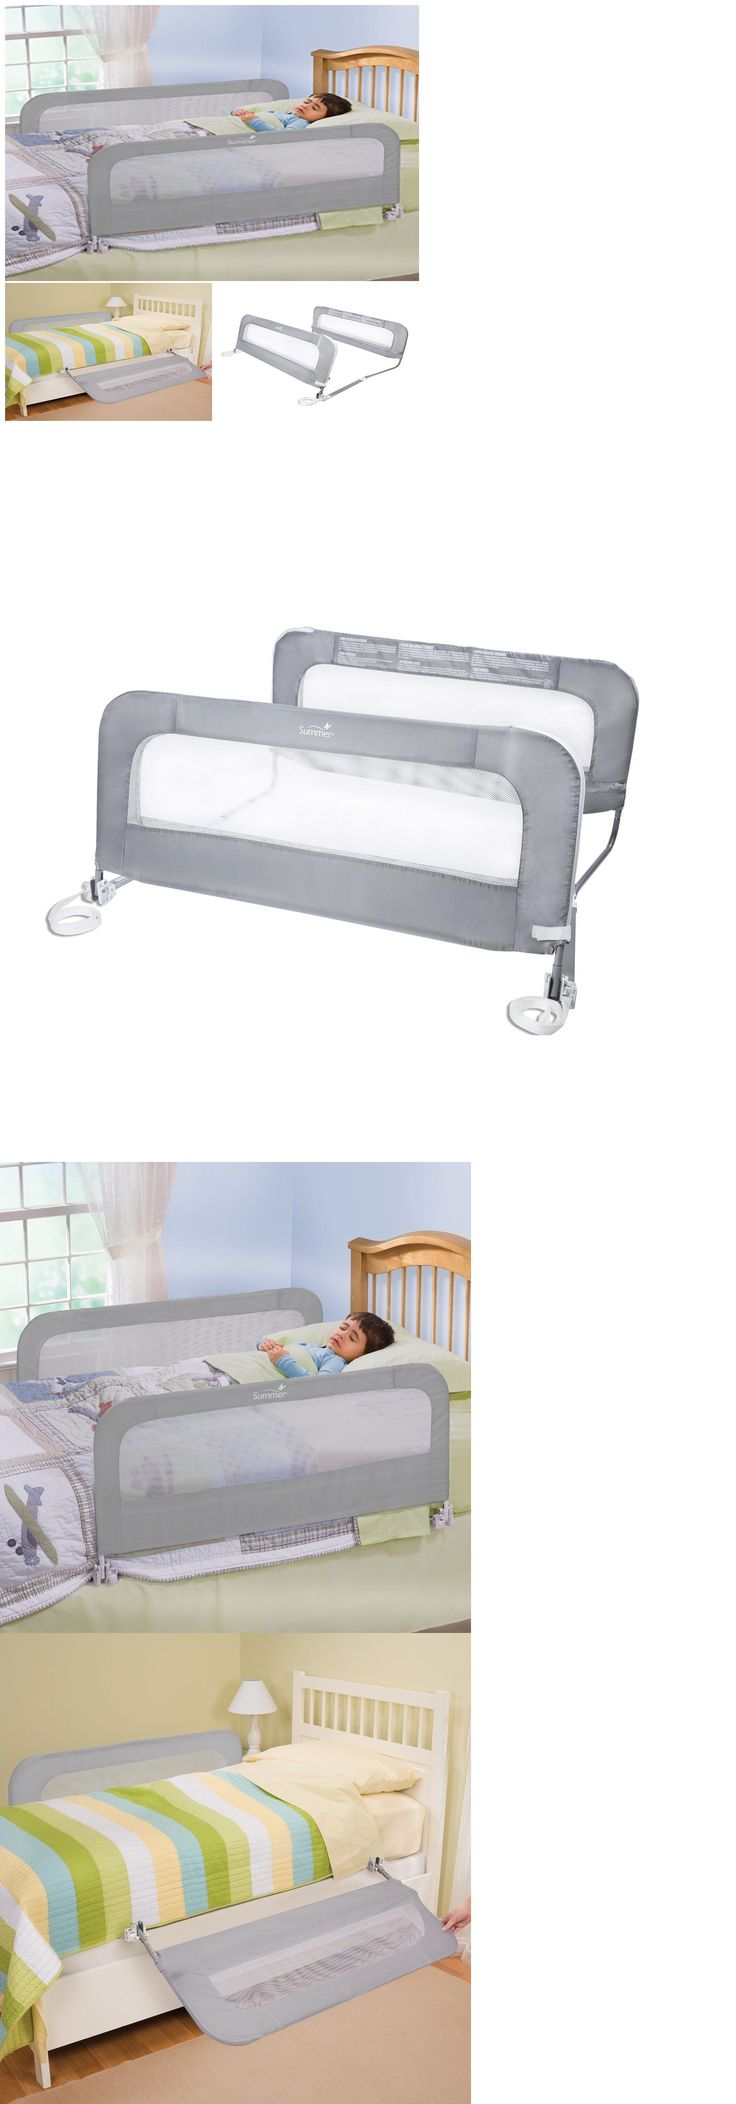 Bed Rails 162183: Summer New Double Twin Bed Safety Rails For Infant Toddlers Baby, Free Shipping -> BUY IT NOW ONLY: $40.99 on eBay!